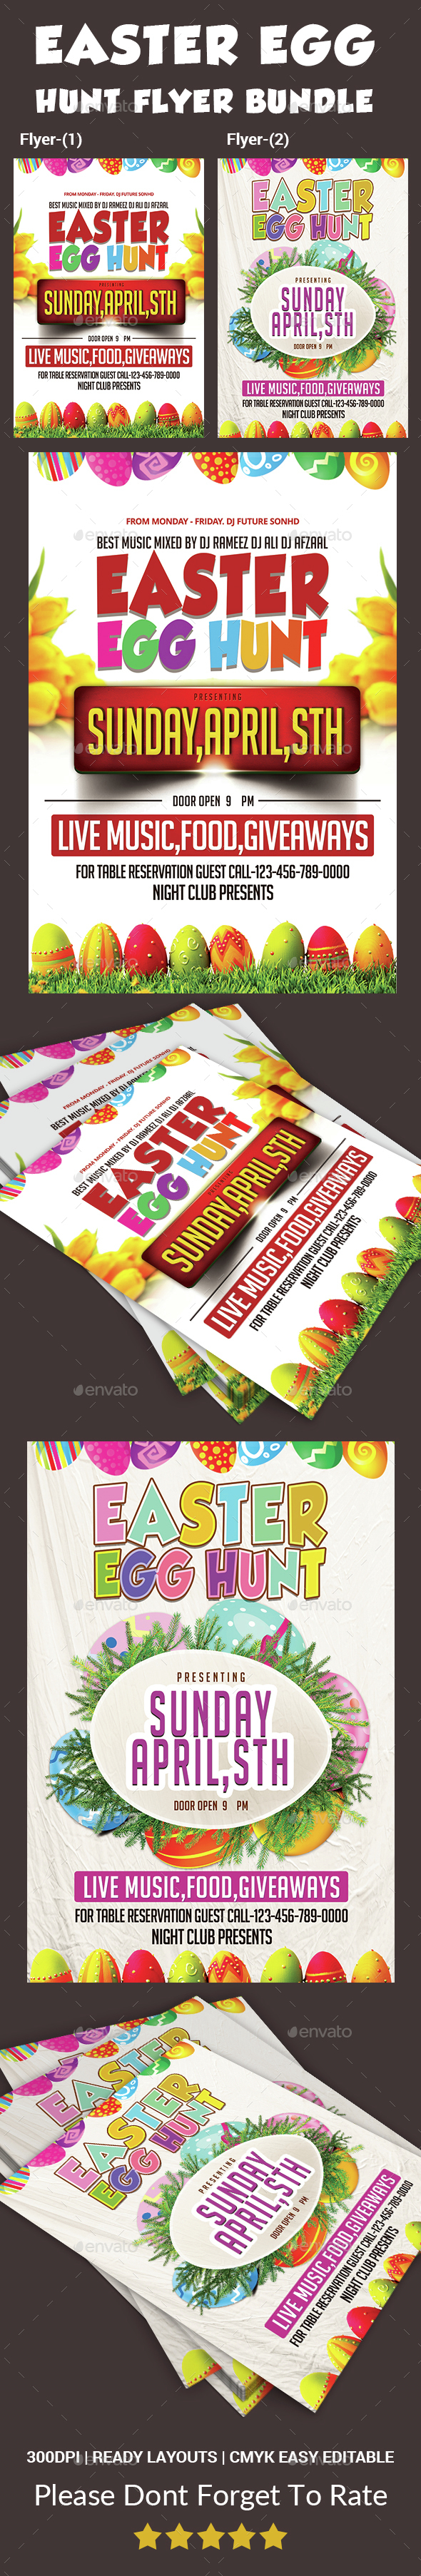 Easter Egg Hunt Flyer-Bundle - Events Flyers